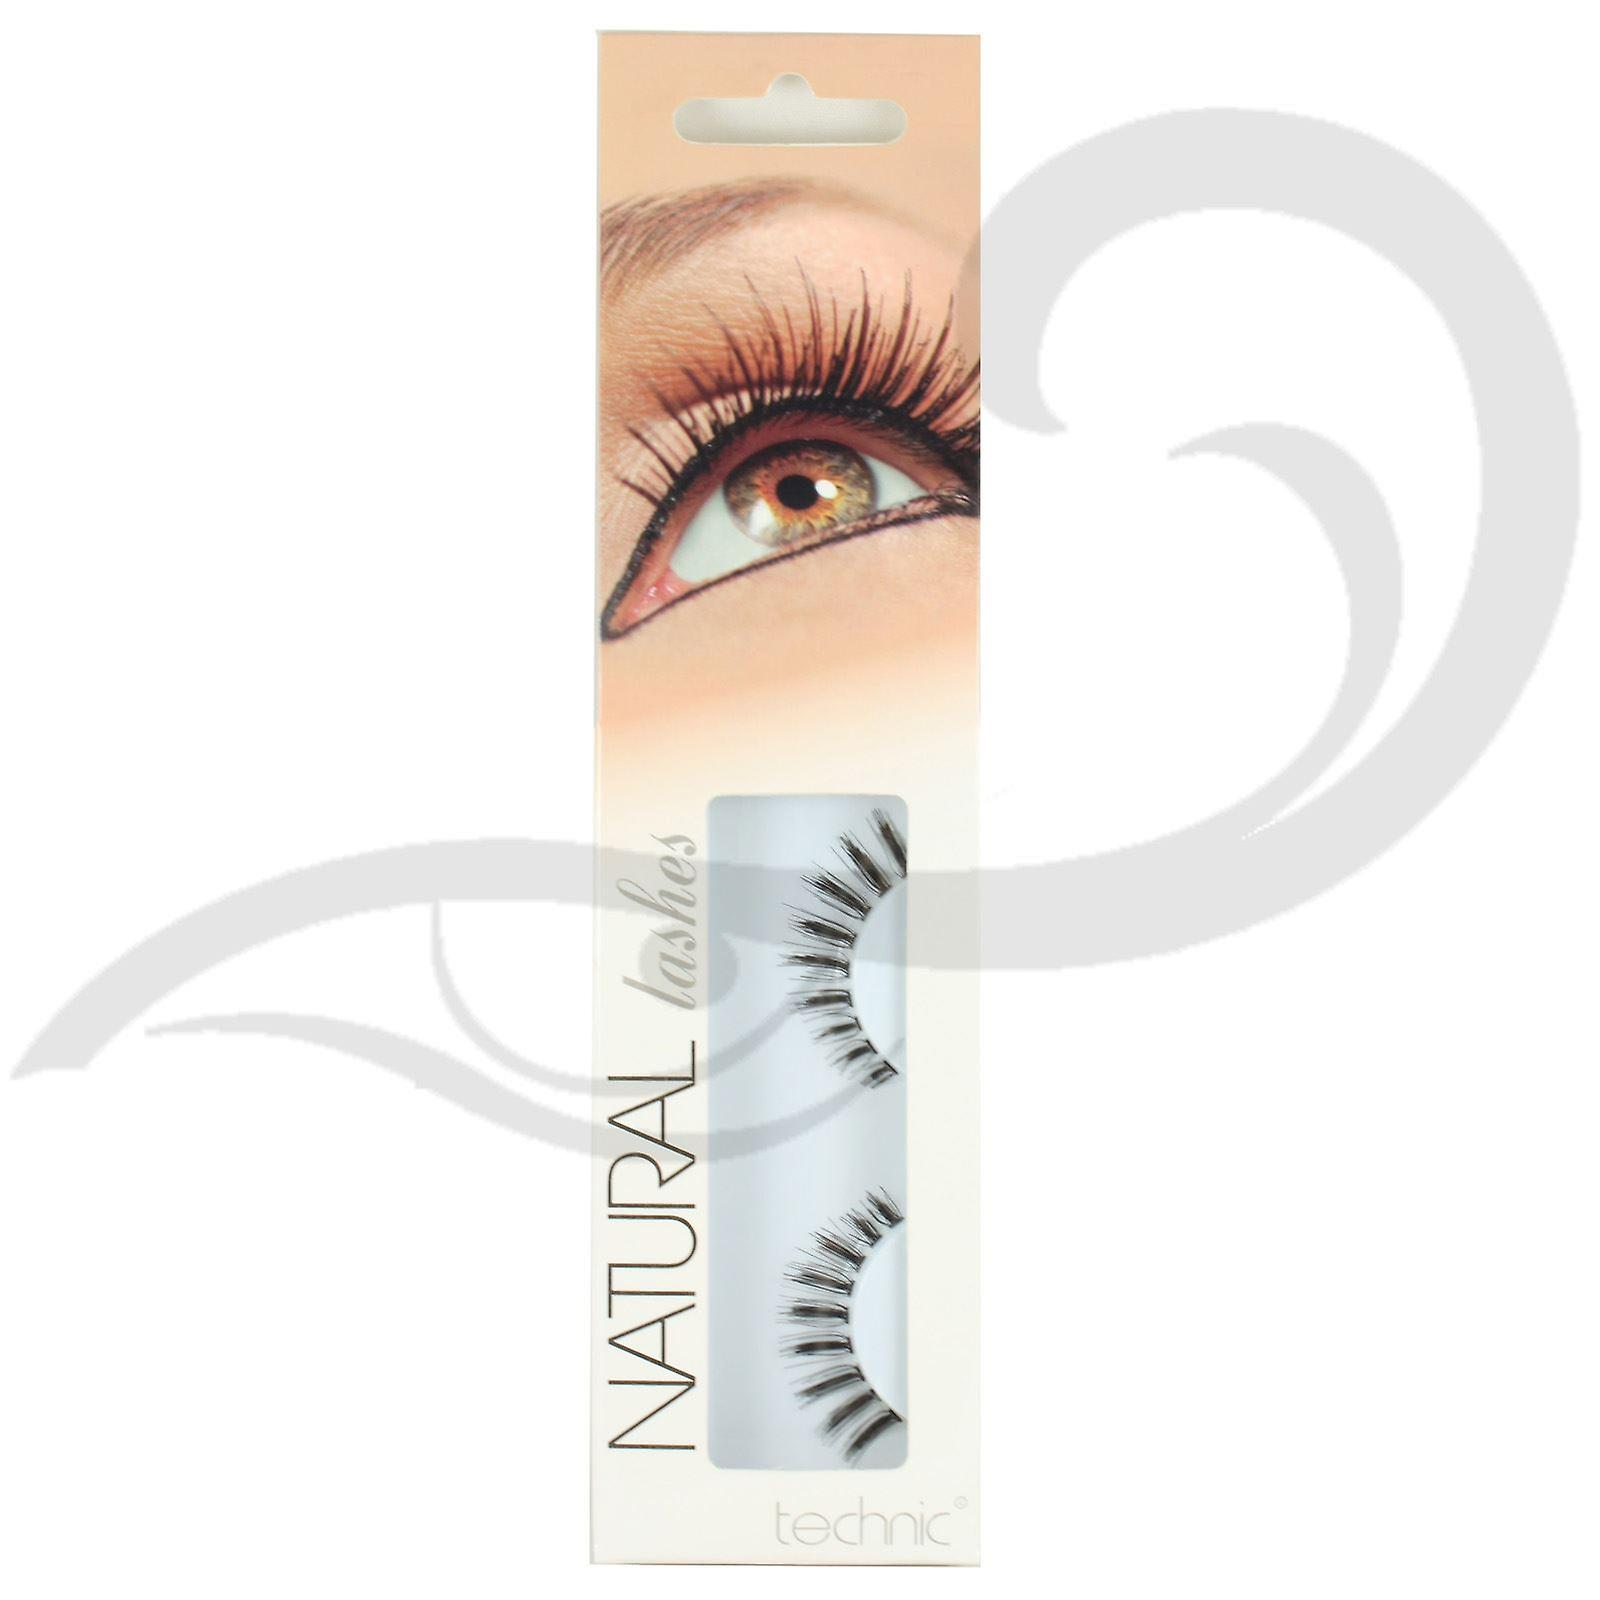 Technic Natural Strip Lashes with Adhesive A27